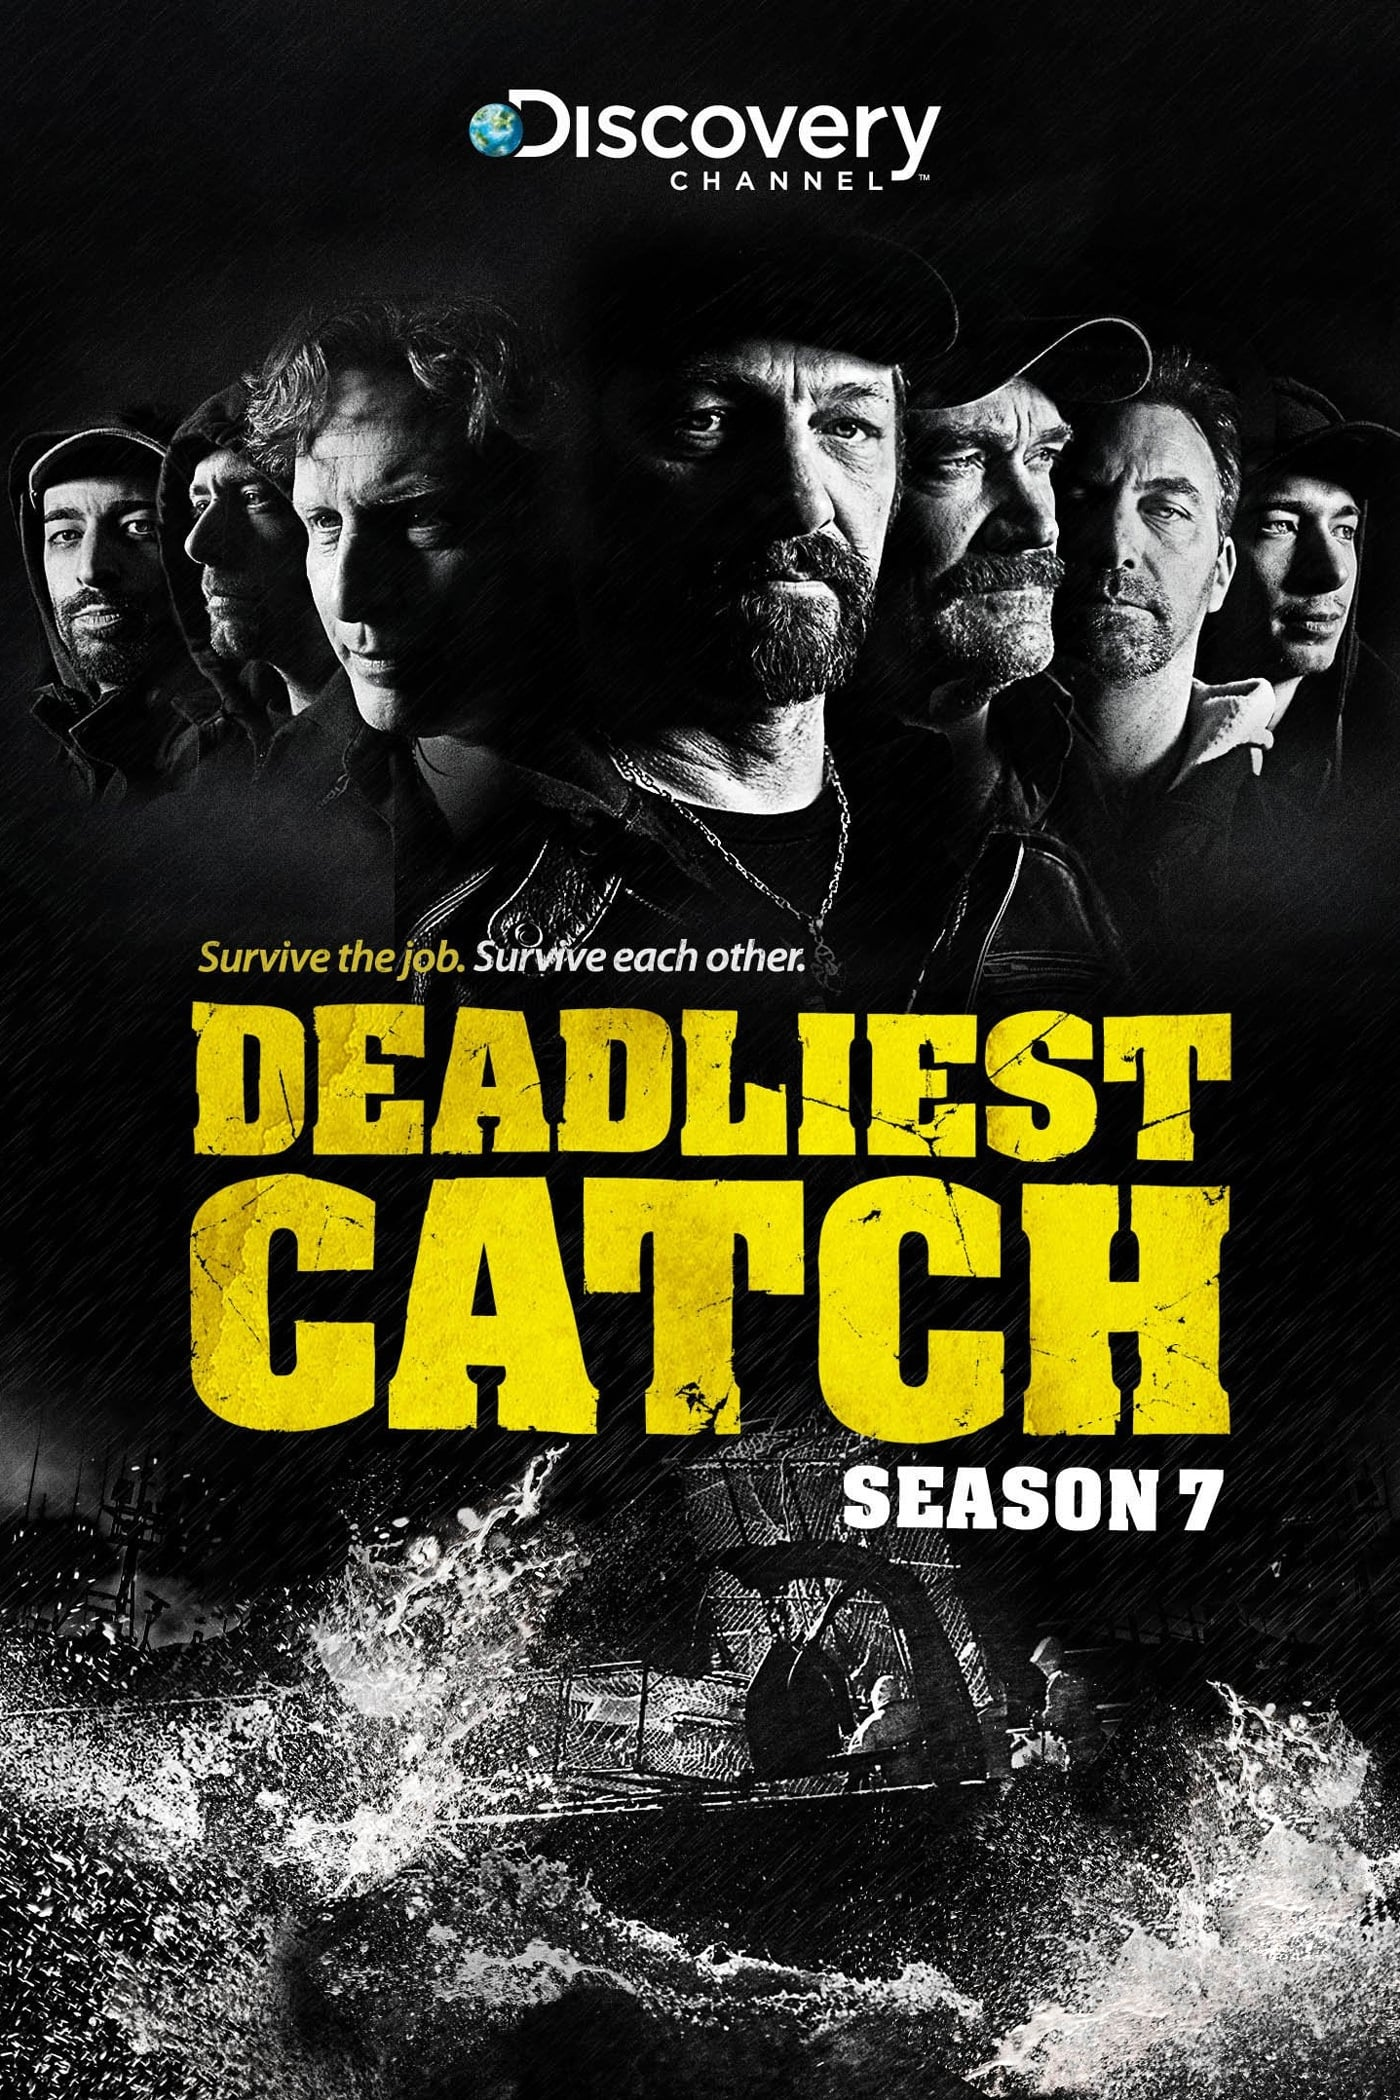 Deadliest Catch Season 7